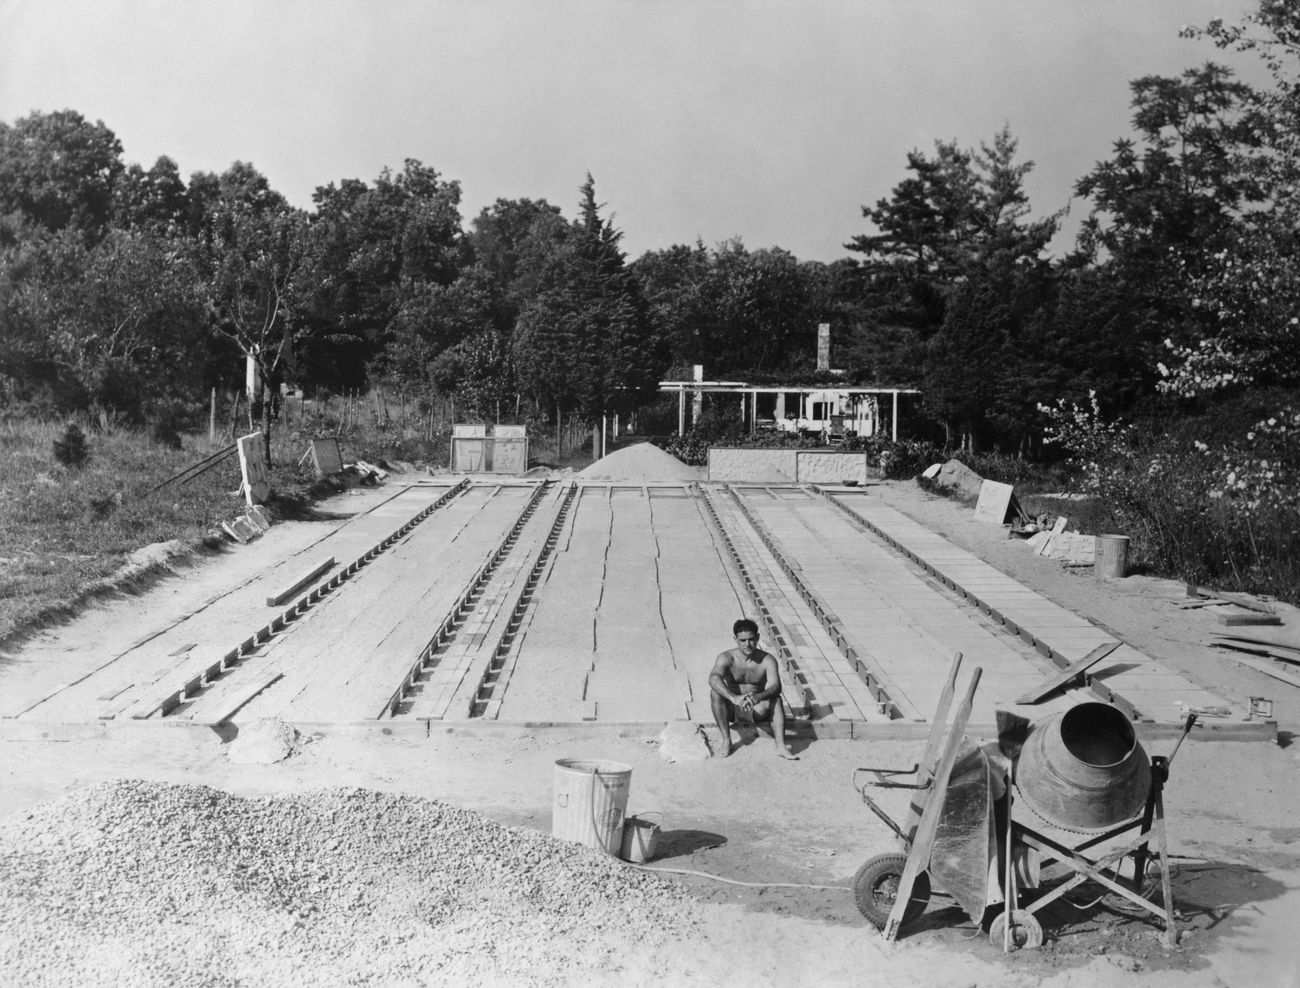 Sandcasting Field. Courtesy of the Nivola family archive. Photographer and date unknown